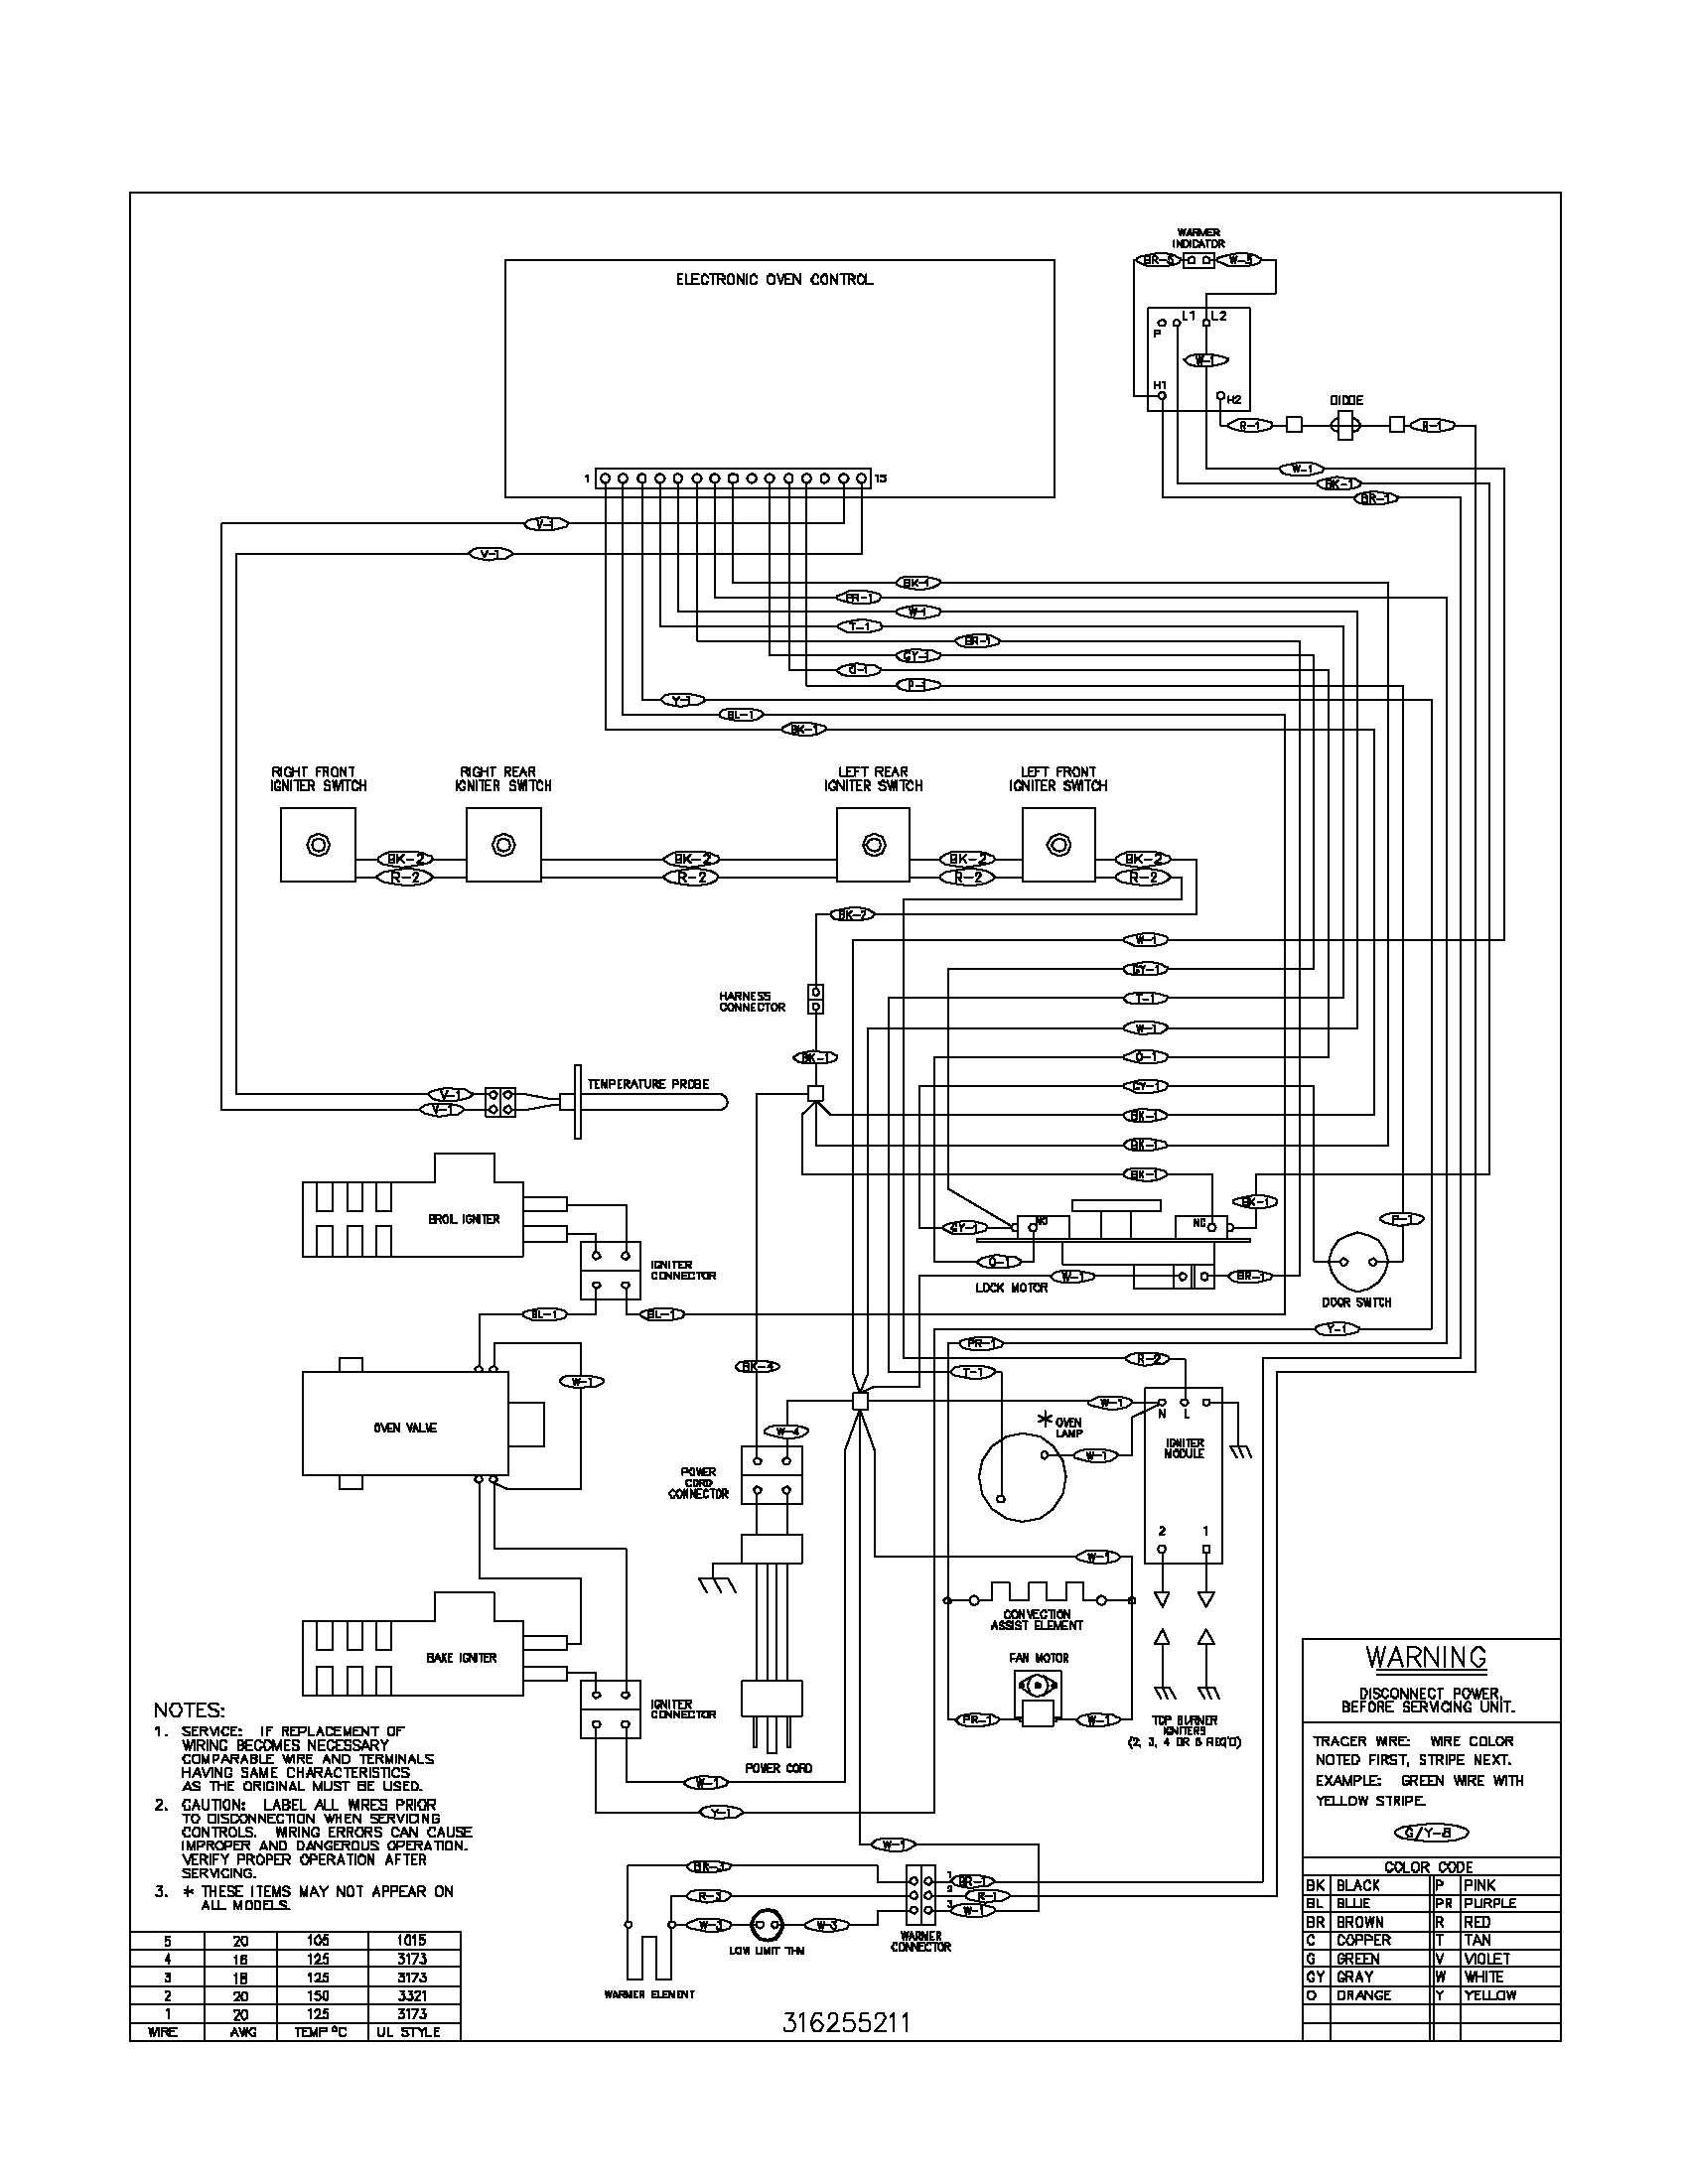 wiring diagram parts kitchenaid wiring diagram kitchenaid washing machine diagram kitchenaid dishwasher wiring diagram at edmiracle.co